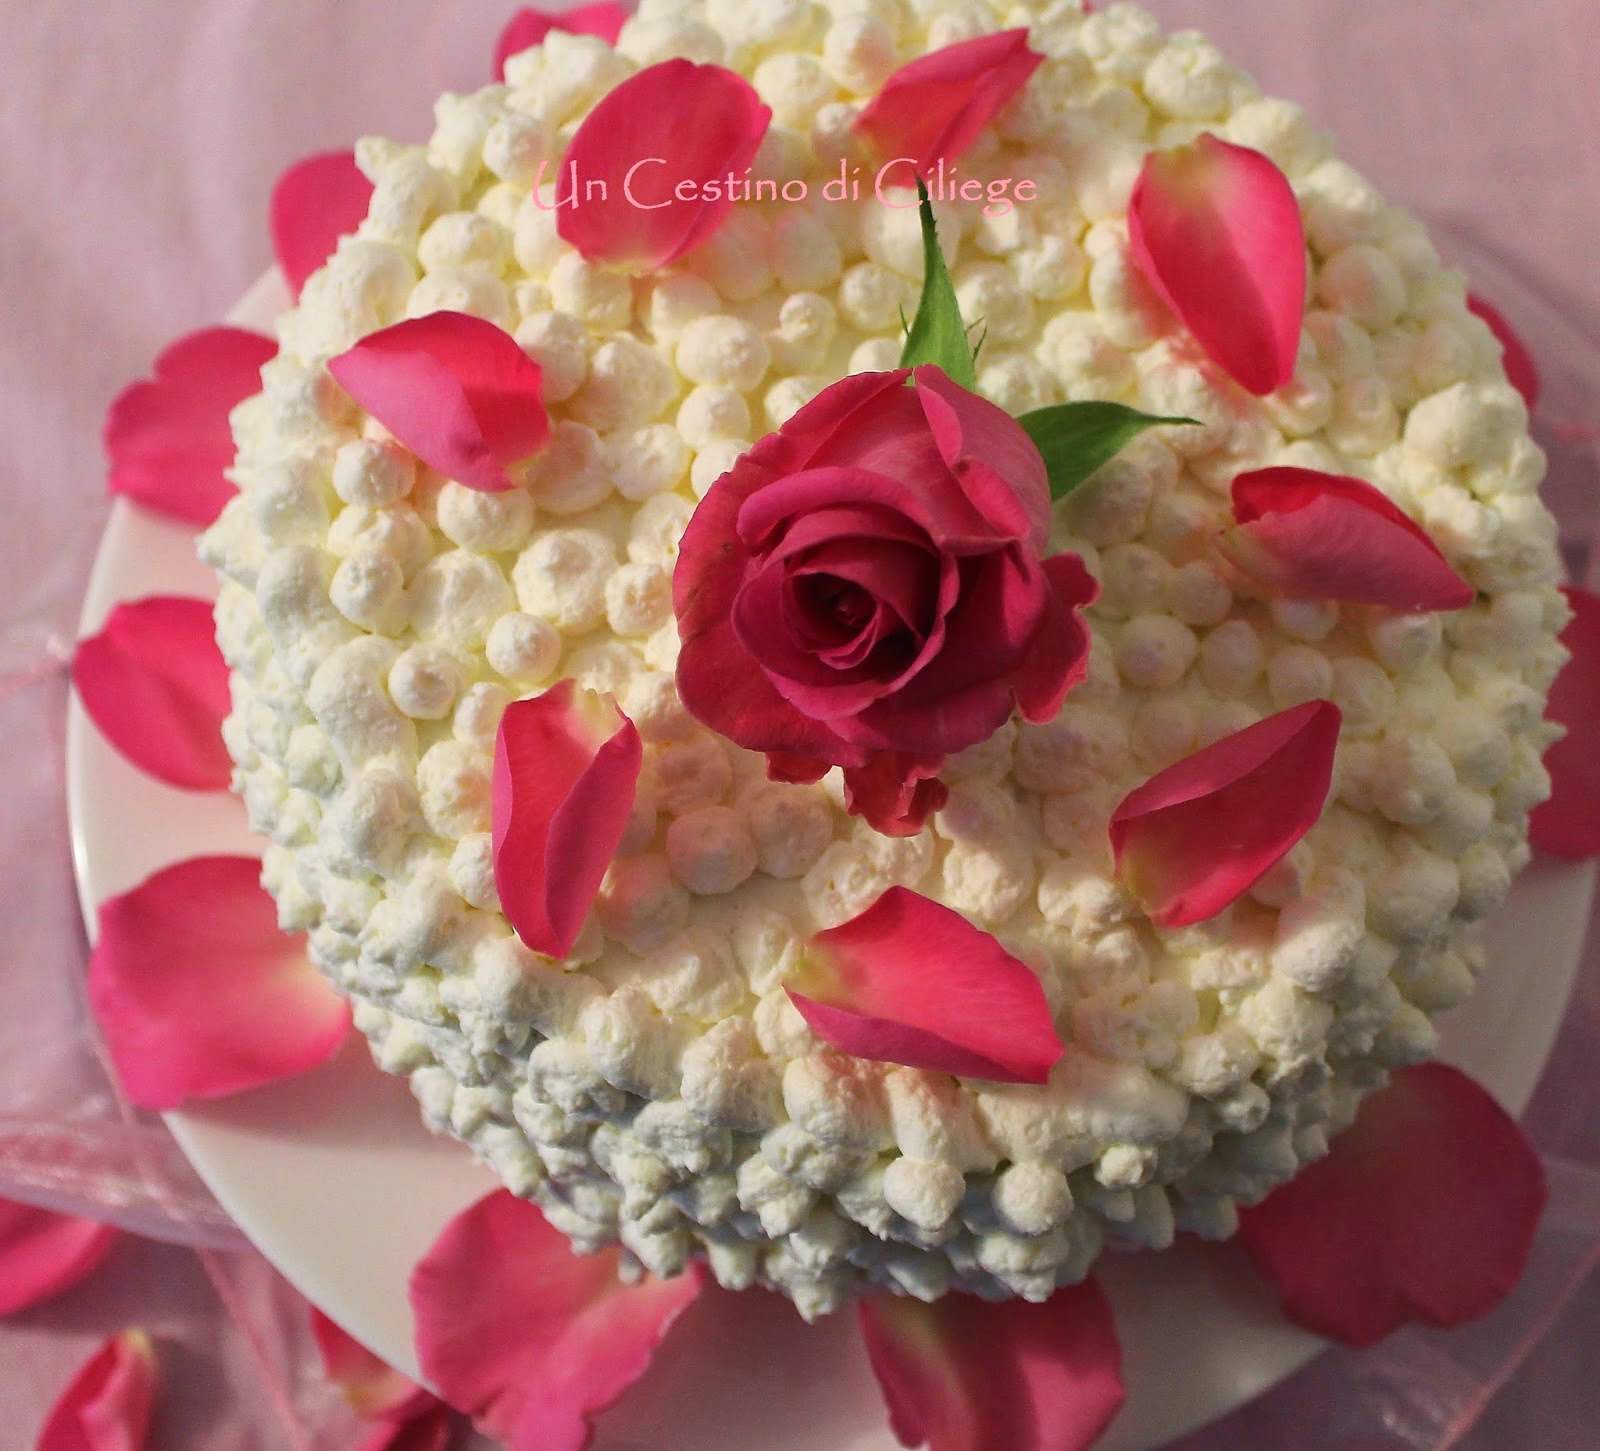 http://uncestinodiciliege.blogspot.it/2014/05/white-rose-cake.html